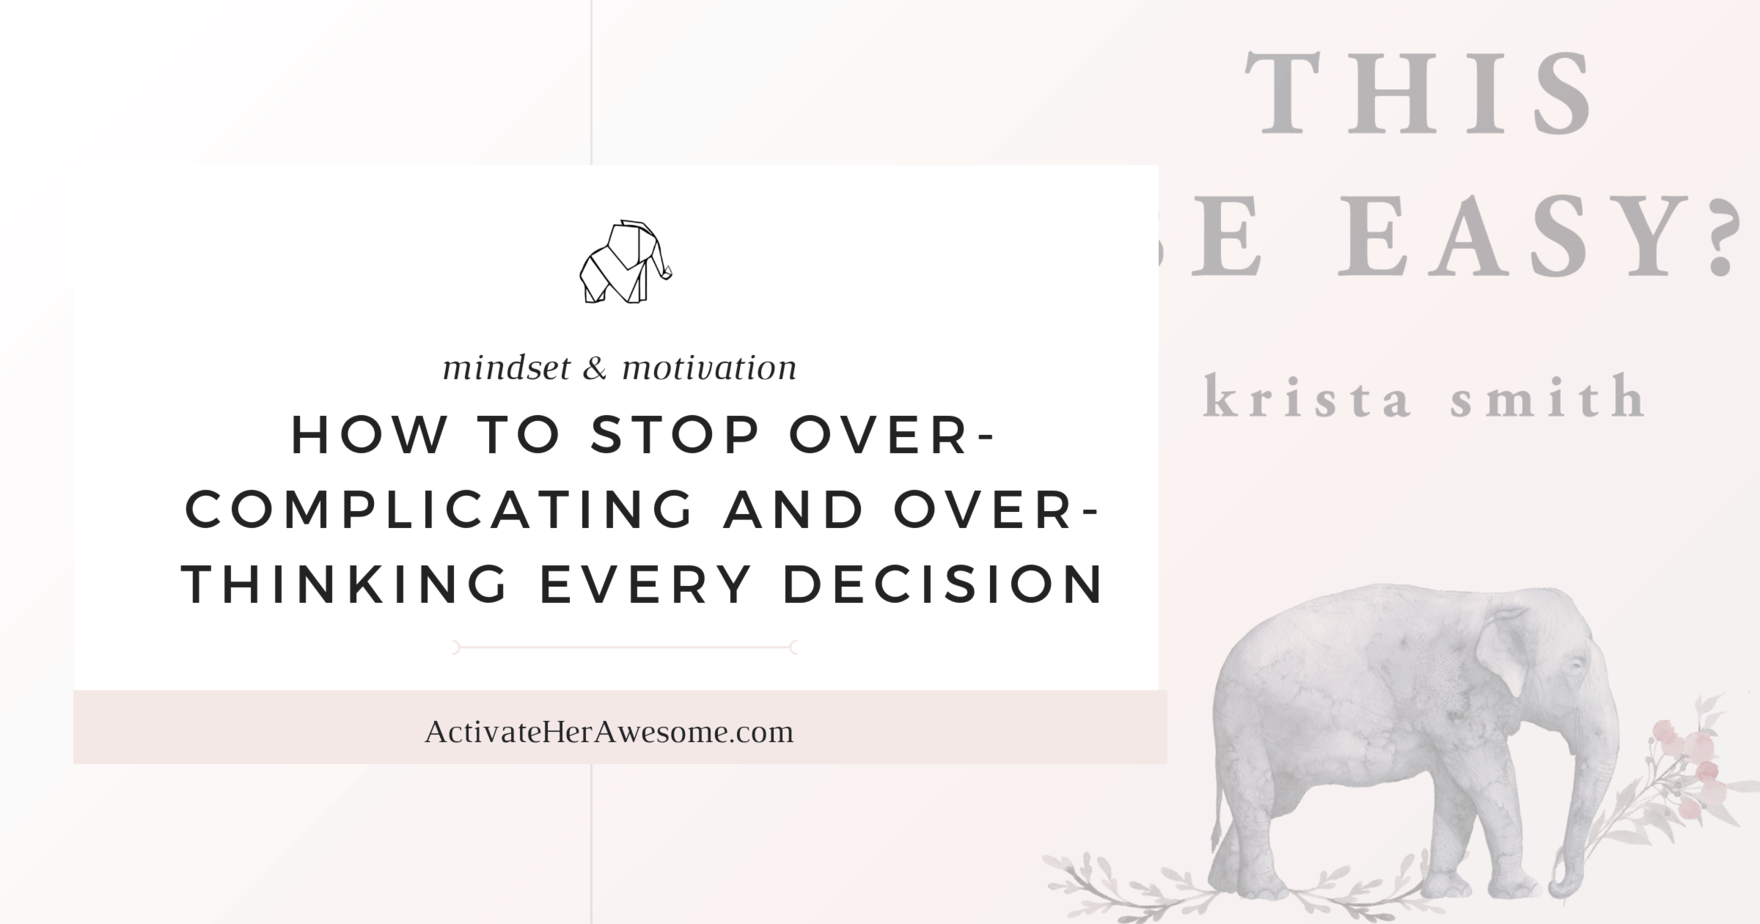 How to Stop Over-Complicating and Over-Thinking Every Decision_ via Krista Smith at ActivateHerAwesome.com